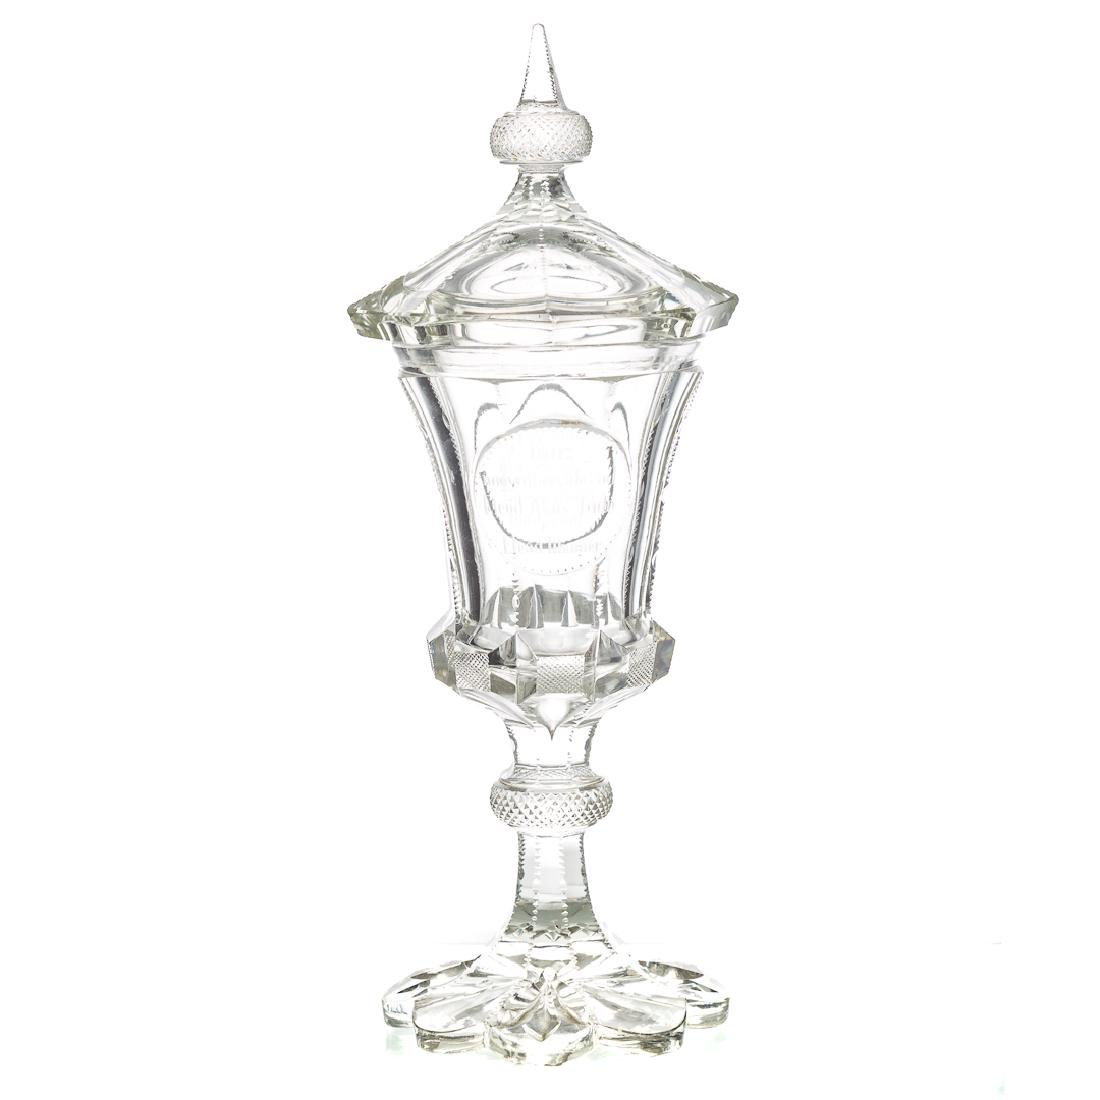 Bohemian cut clear glass pokal